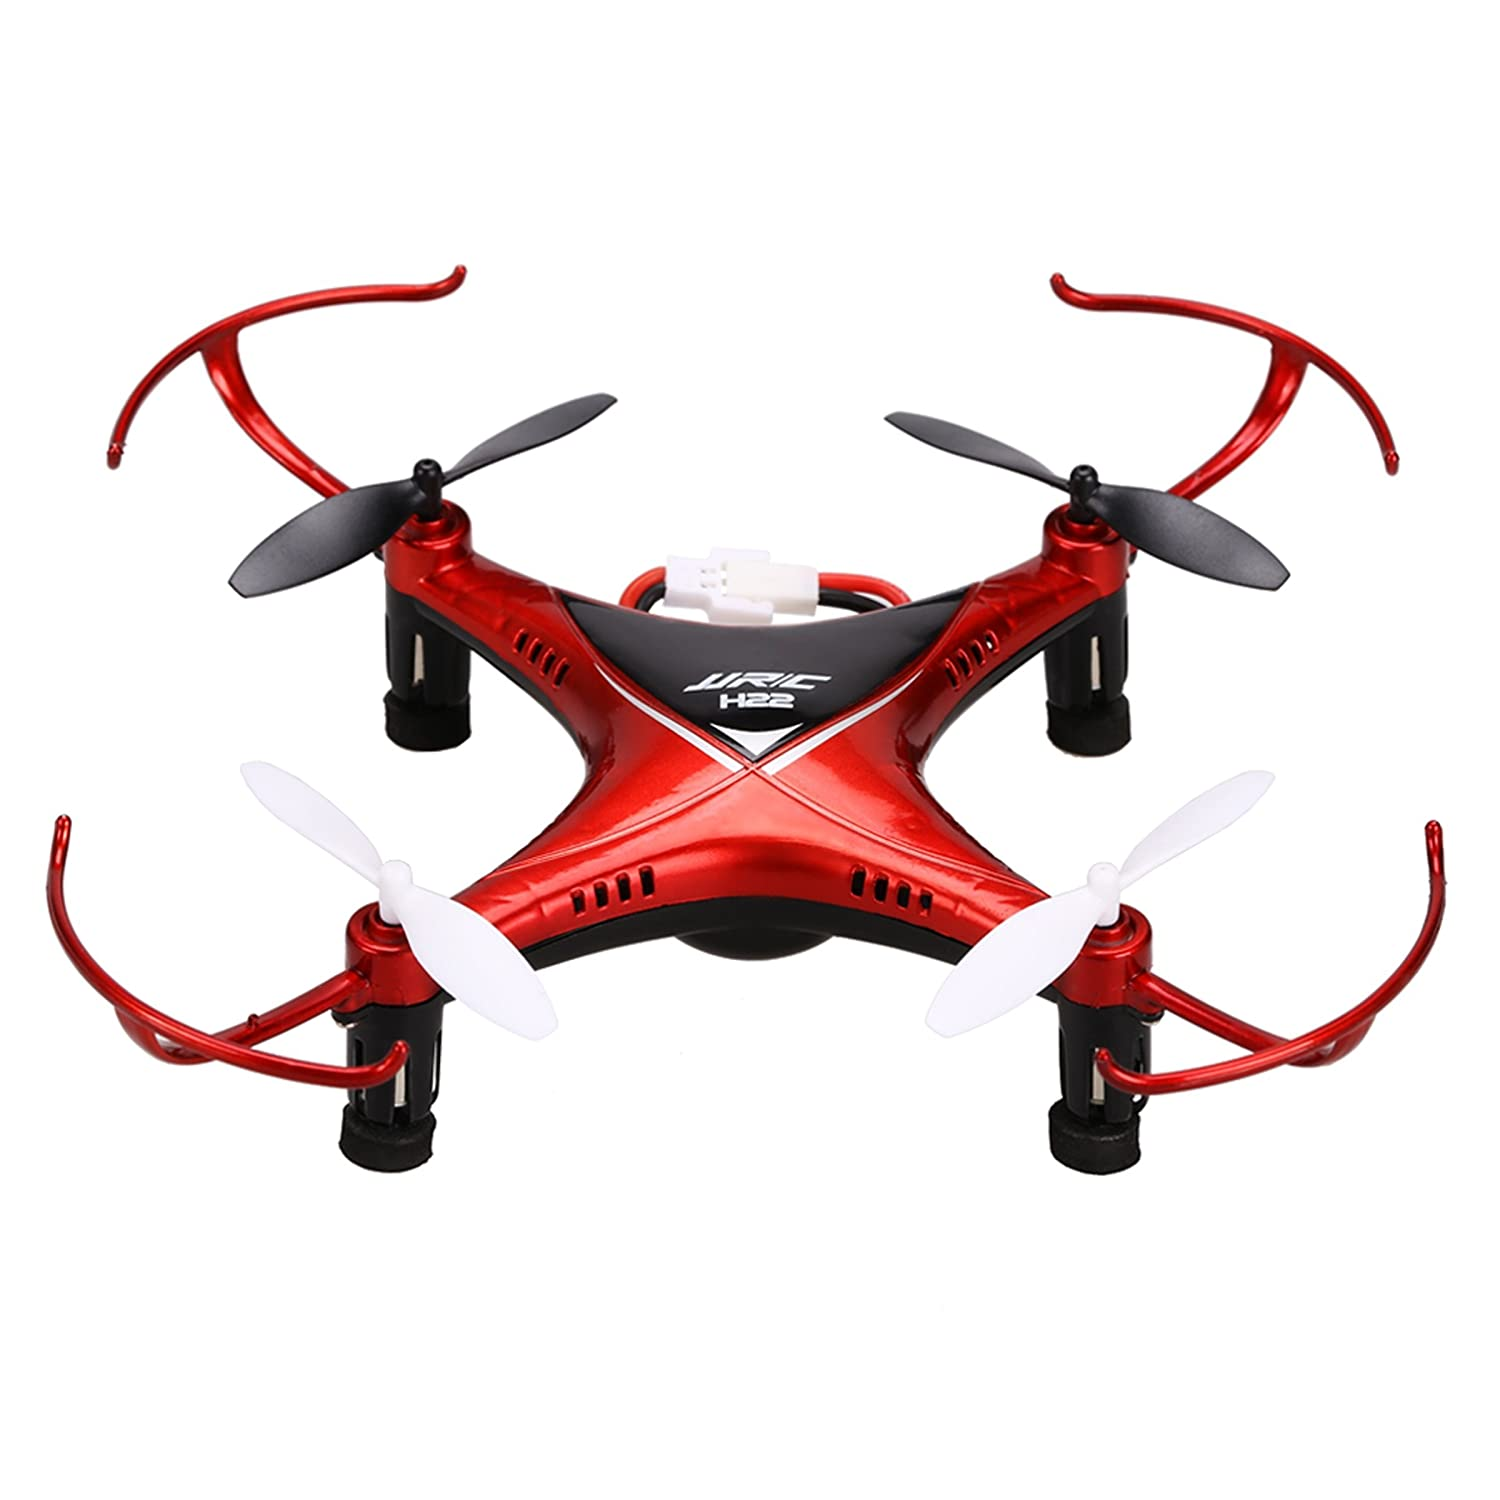 Voomall JJRC H22 2.4G 4CH 6-Axis Gyro Mini Drone Double-sided 3D Inverted Flight Mini RC Quadcopter for Kids